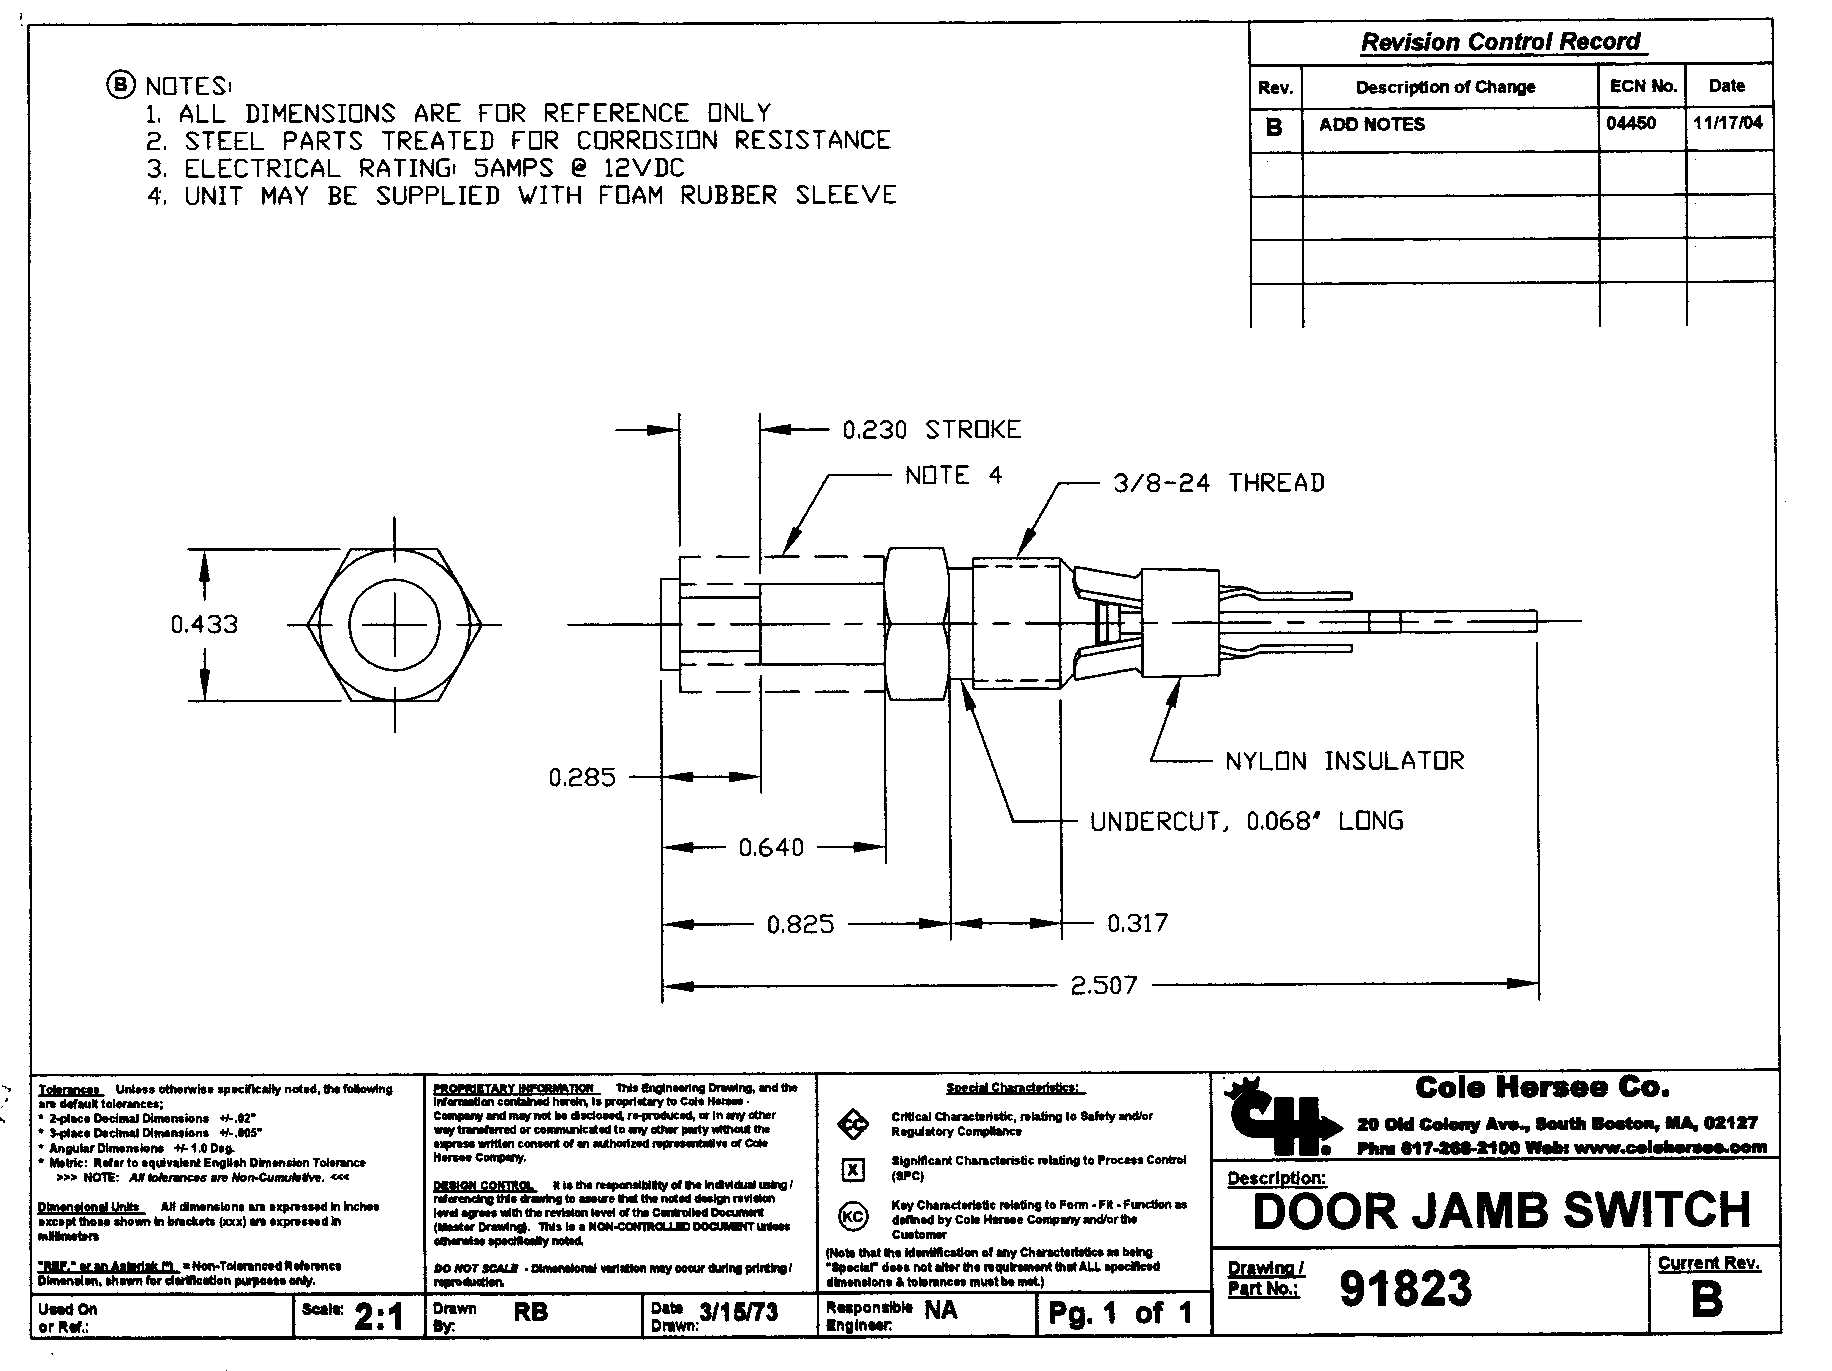 44009 cole hersee 91823 momentary grounded push button door jamb switch door jamb switch wiring diagram at suagrazia.org